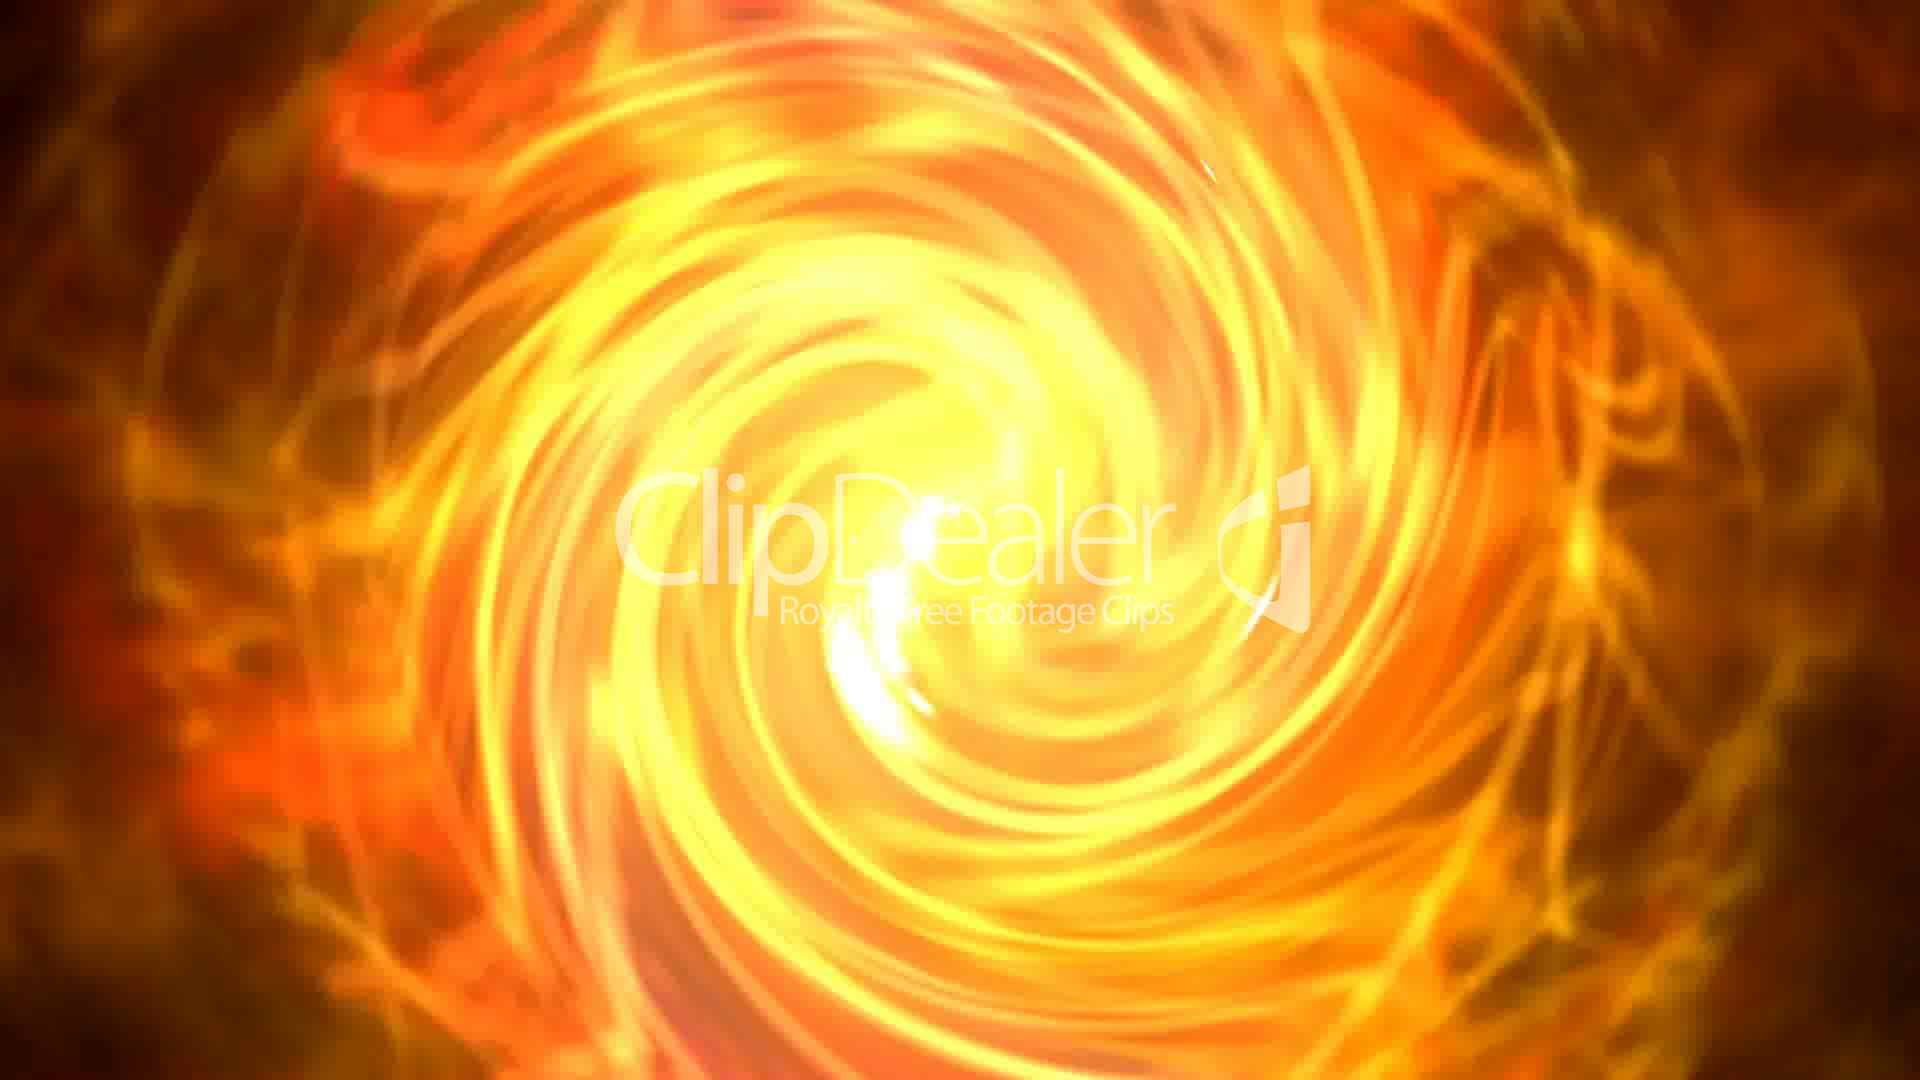 Solar Storms Flame Hurricane Swirl Fire Cyclones Shaped